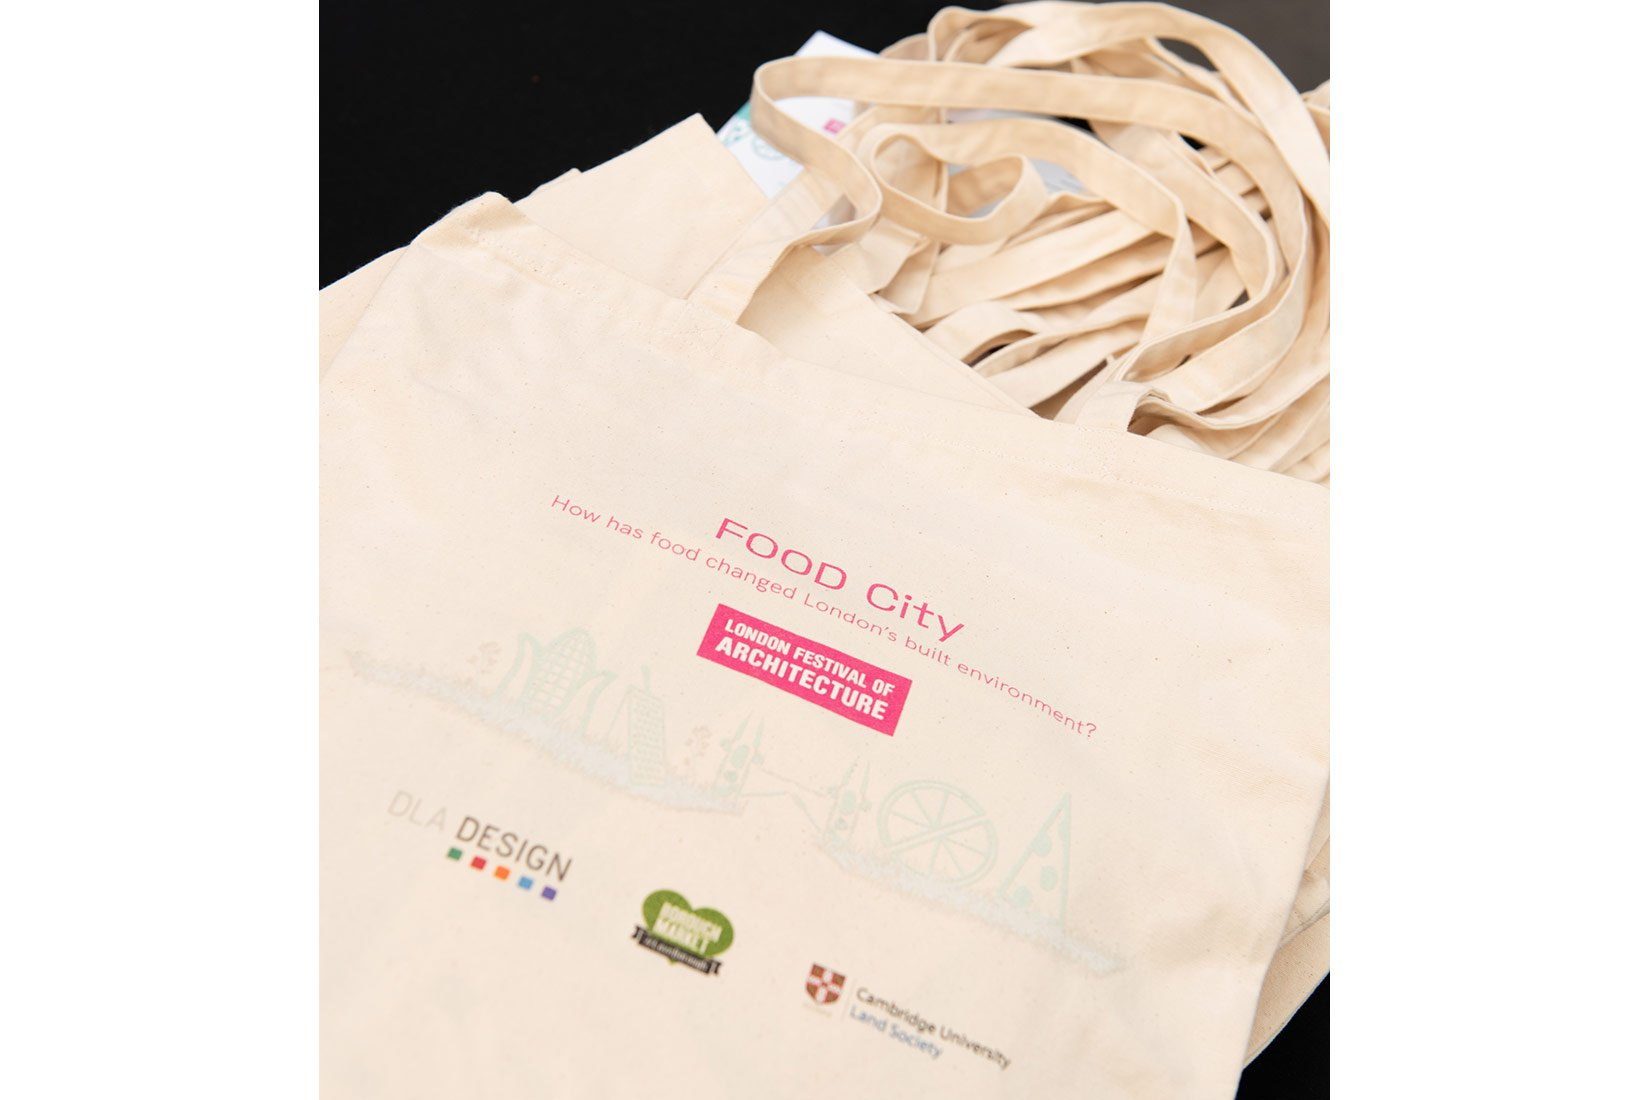 Food City, London Festival of Architecture, Bag